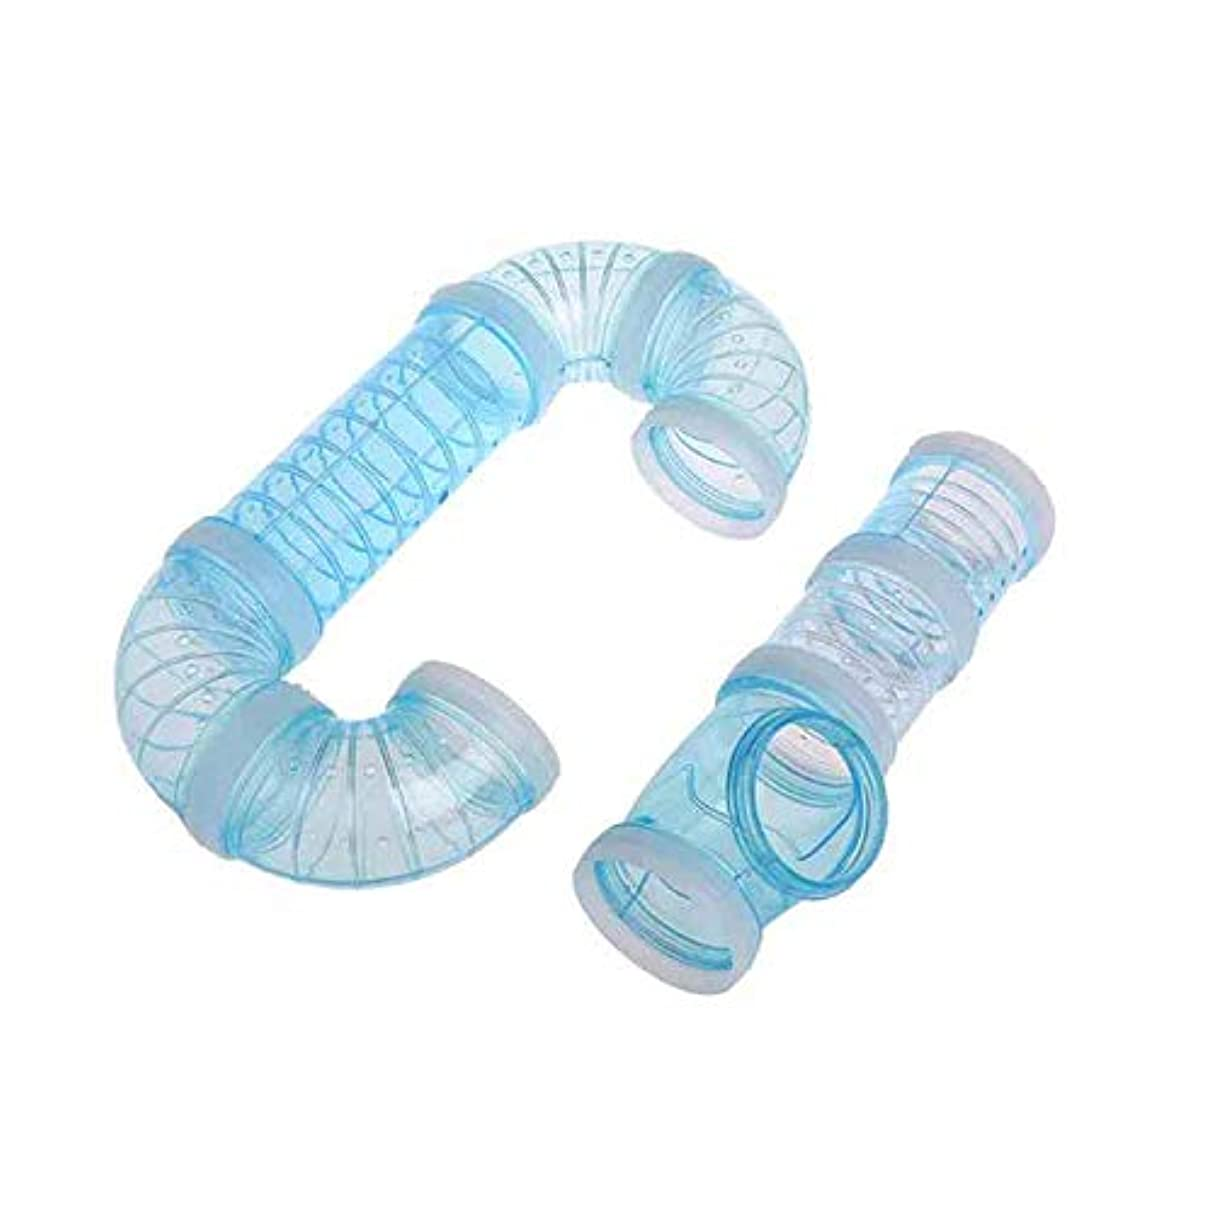 Tube Hamster - Exercise Cage Hamster External Diy Pipeline Tunnel Fittings - Craft Books Tubes Pipe Supplies Cockatiel Cage House Hamster Tube Tunnels Tunnel Accessories